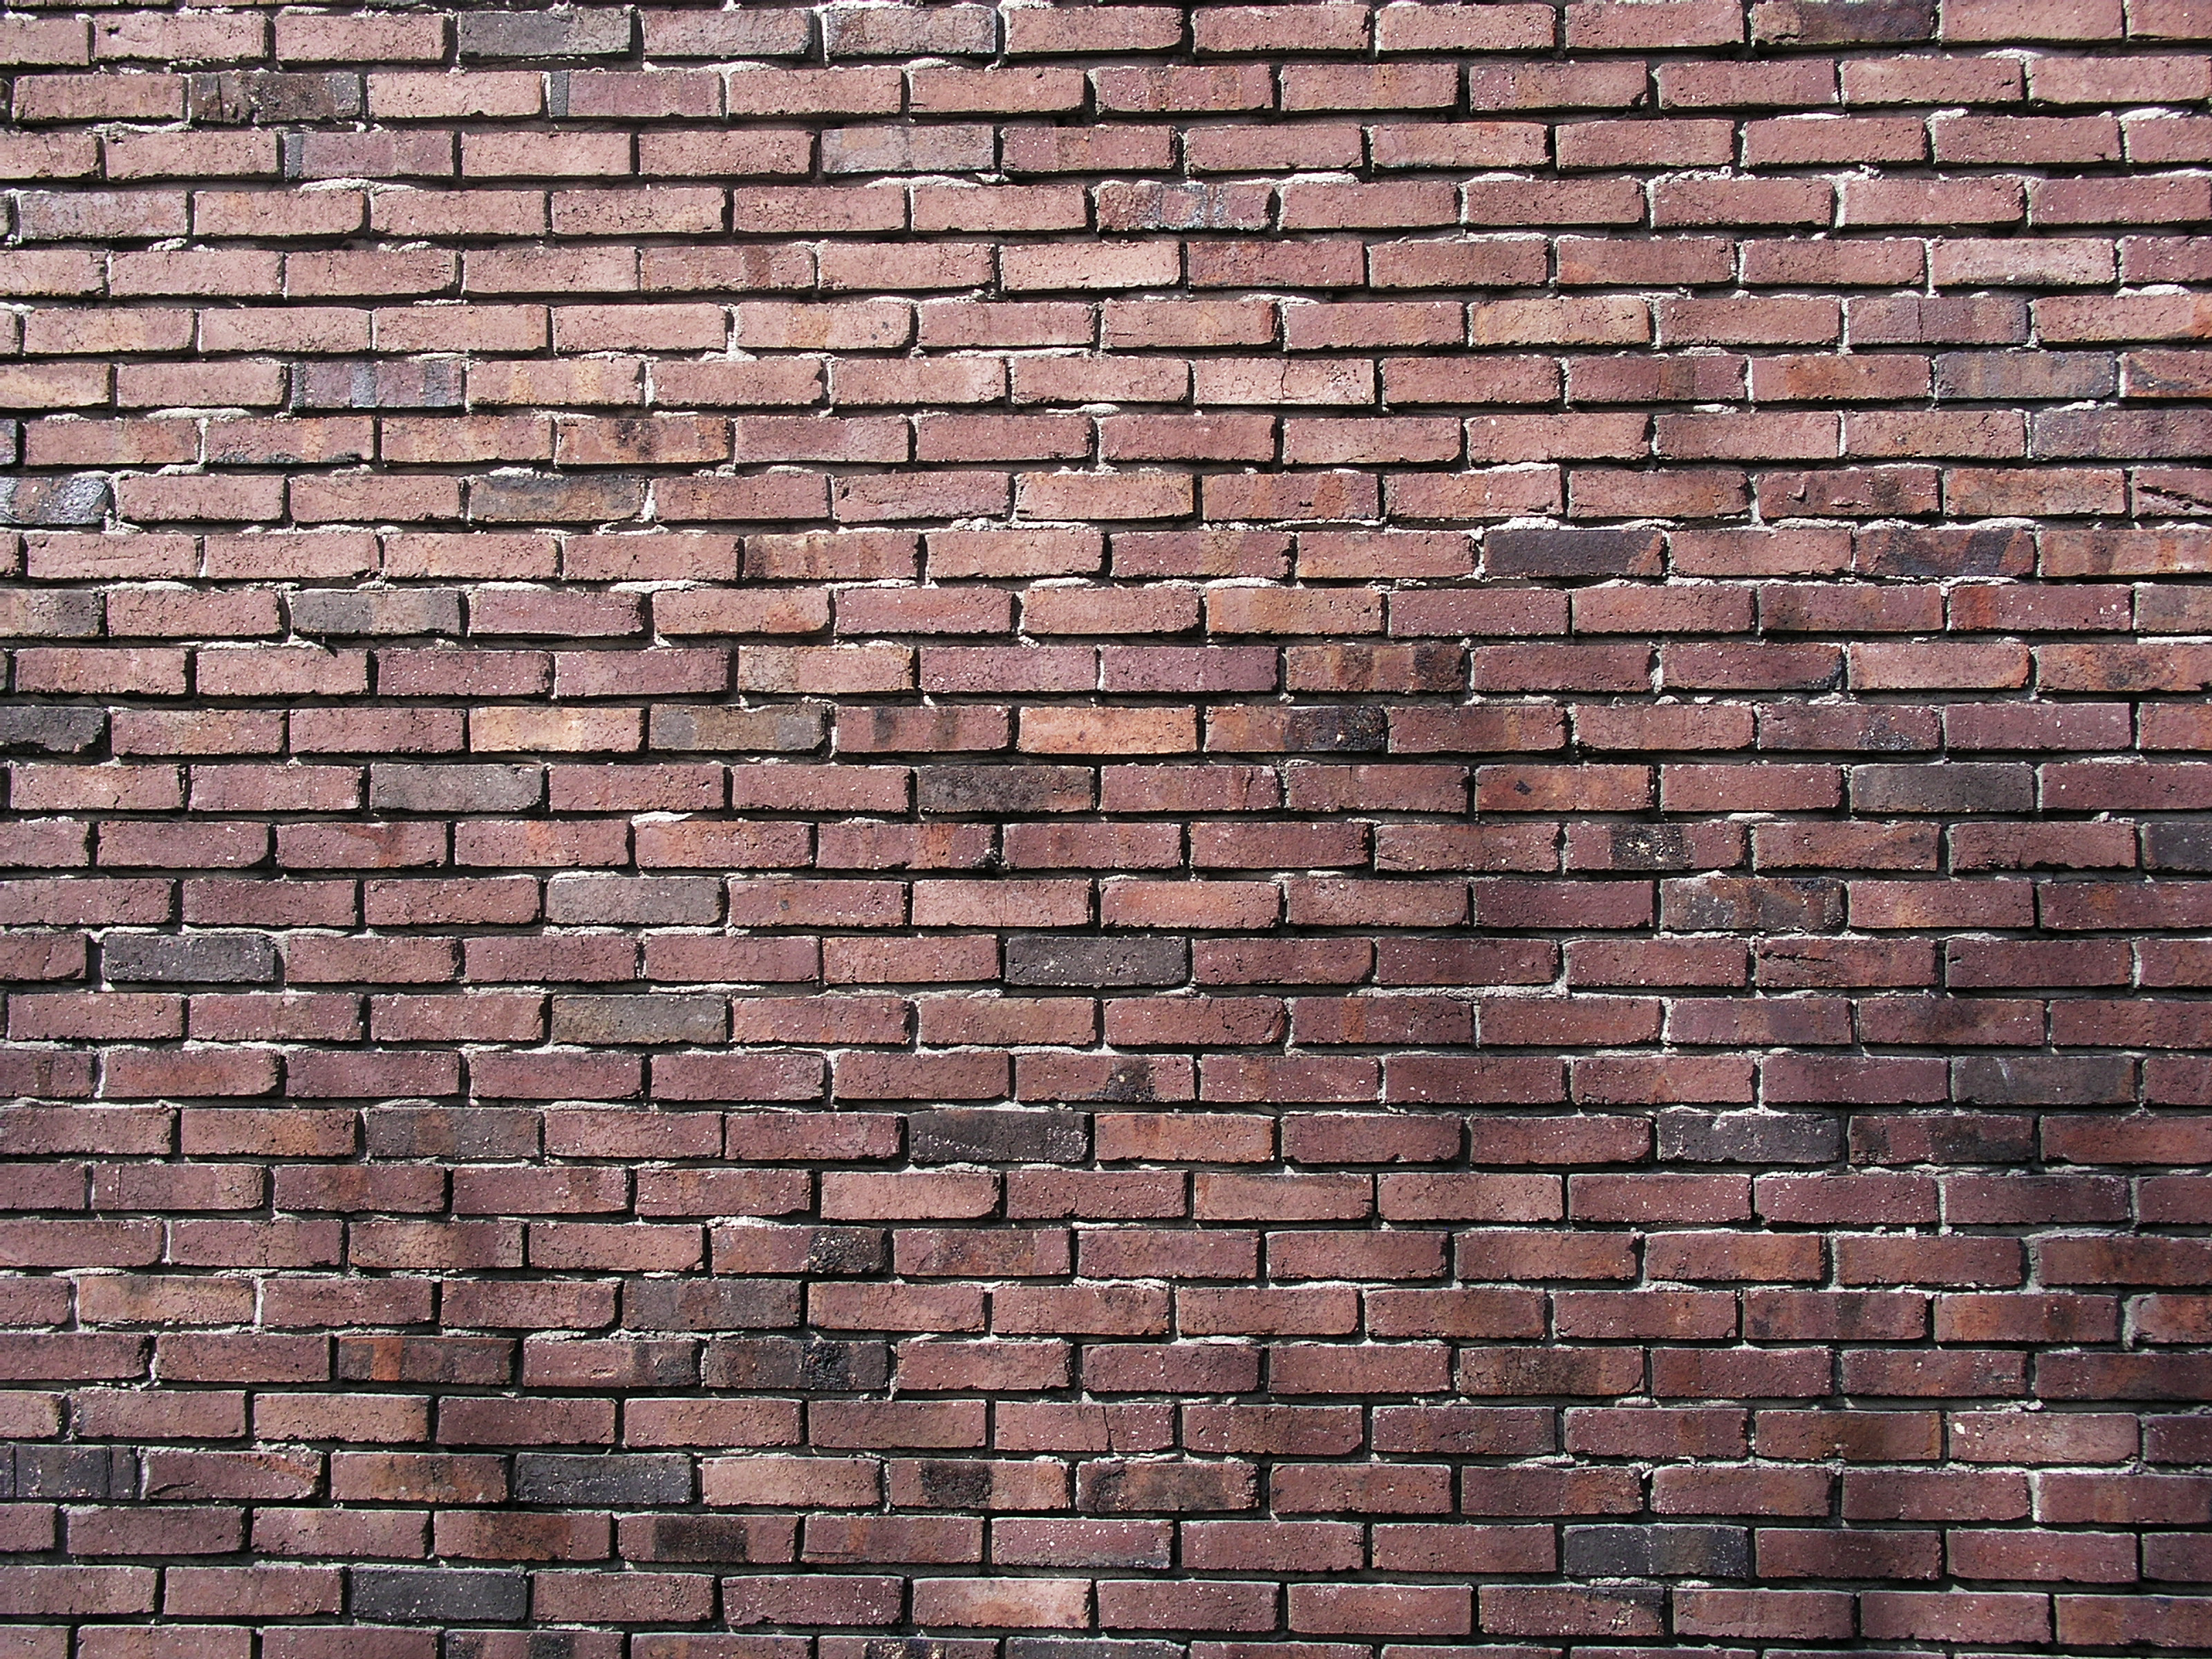 File:Soderledskyrkan brick wall.jpg - Wikimedia Commons